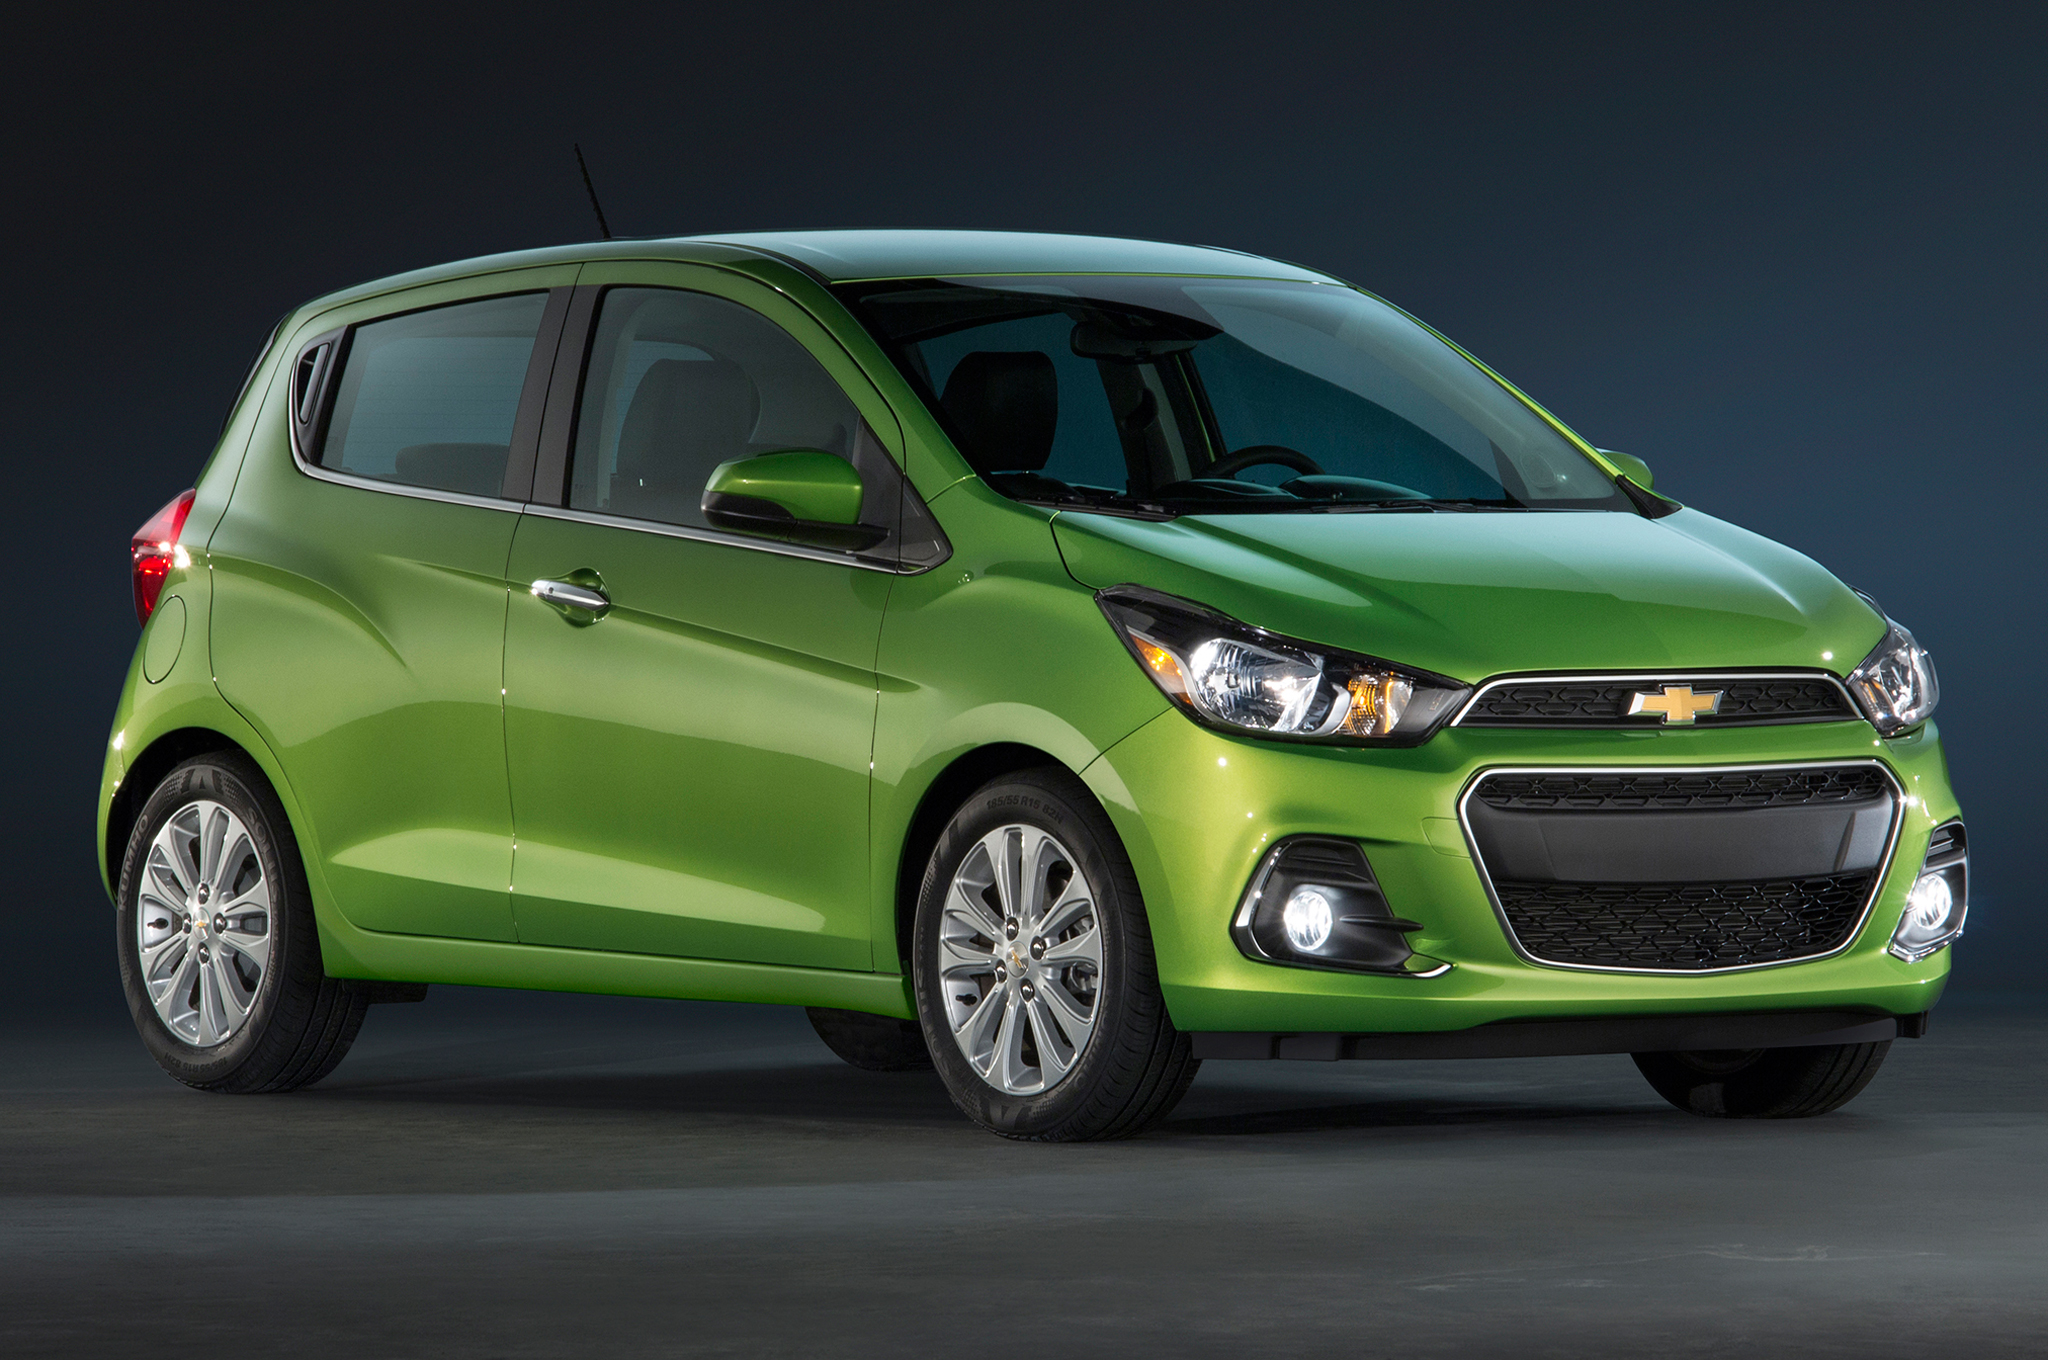 small resolution of 2016 chevrolet spark first look motortrend automotive fuse box wiring 2016 chevrolet spark first look